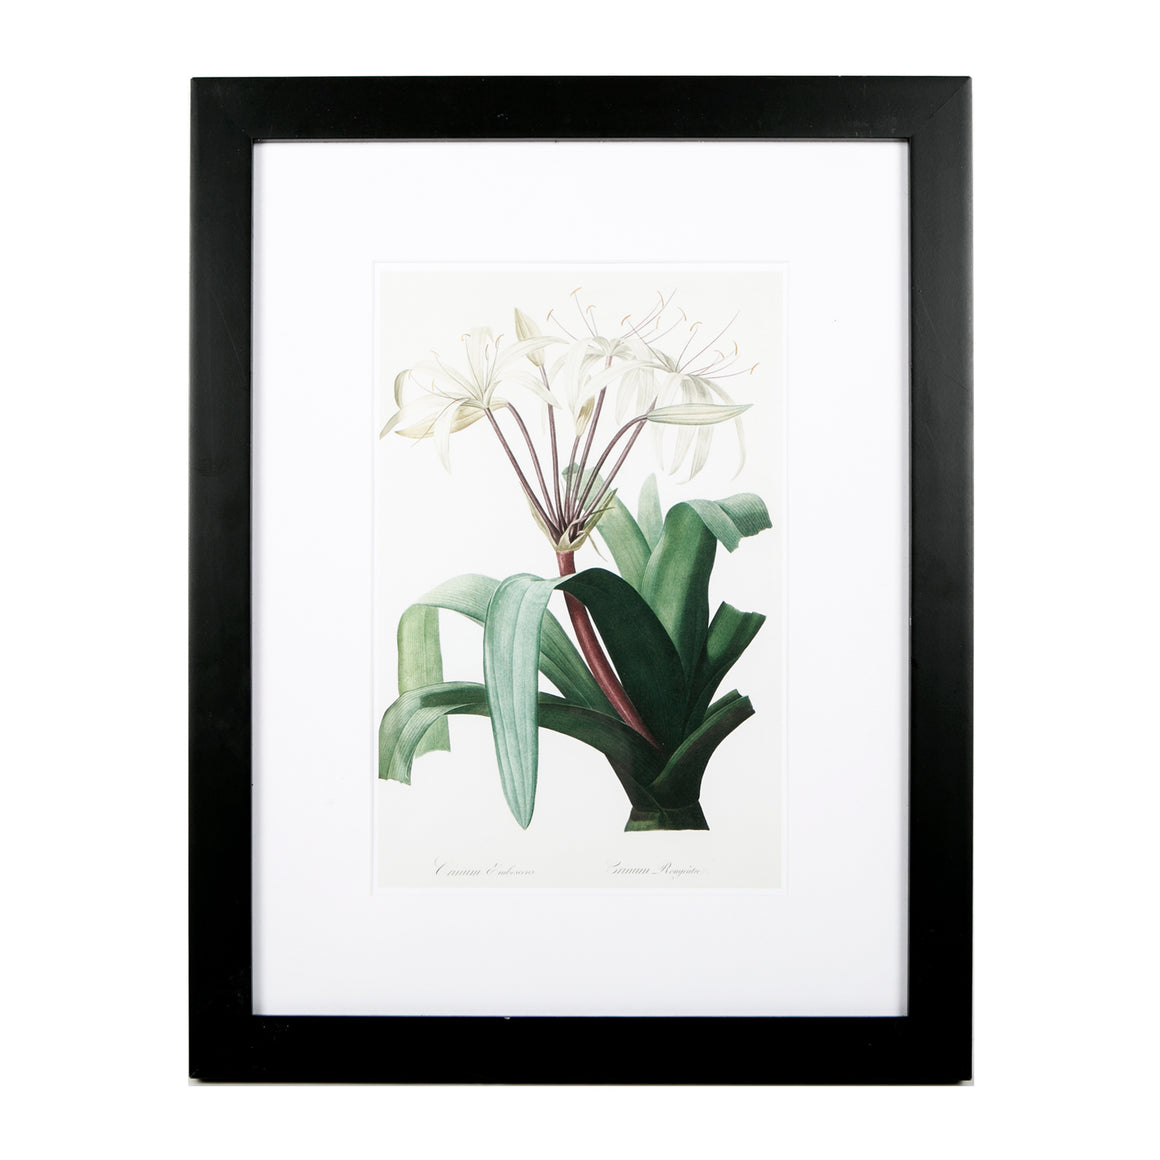 Framed and mounted white floral print